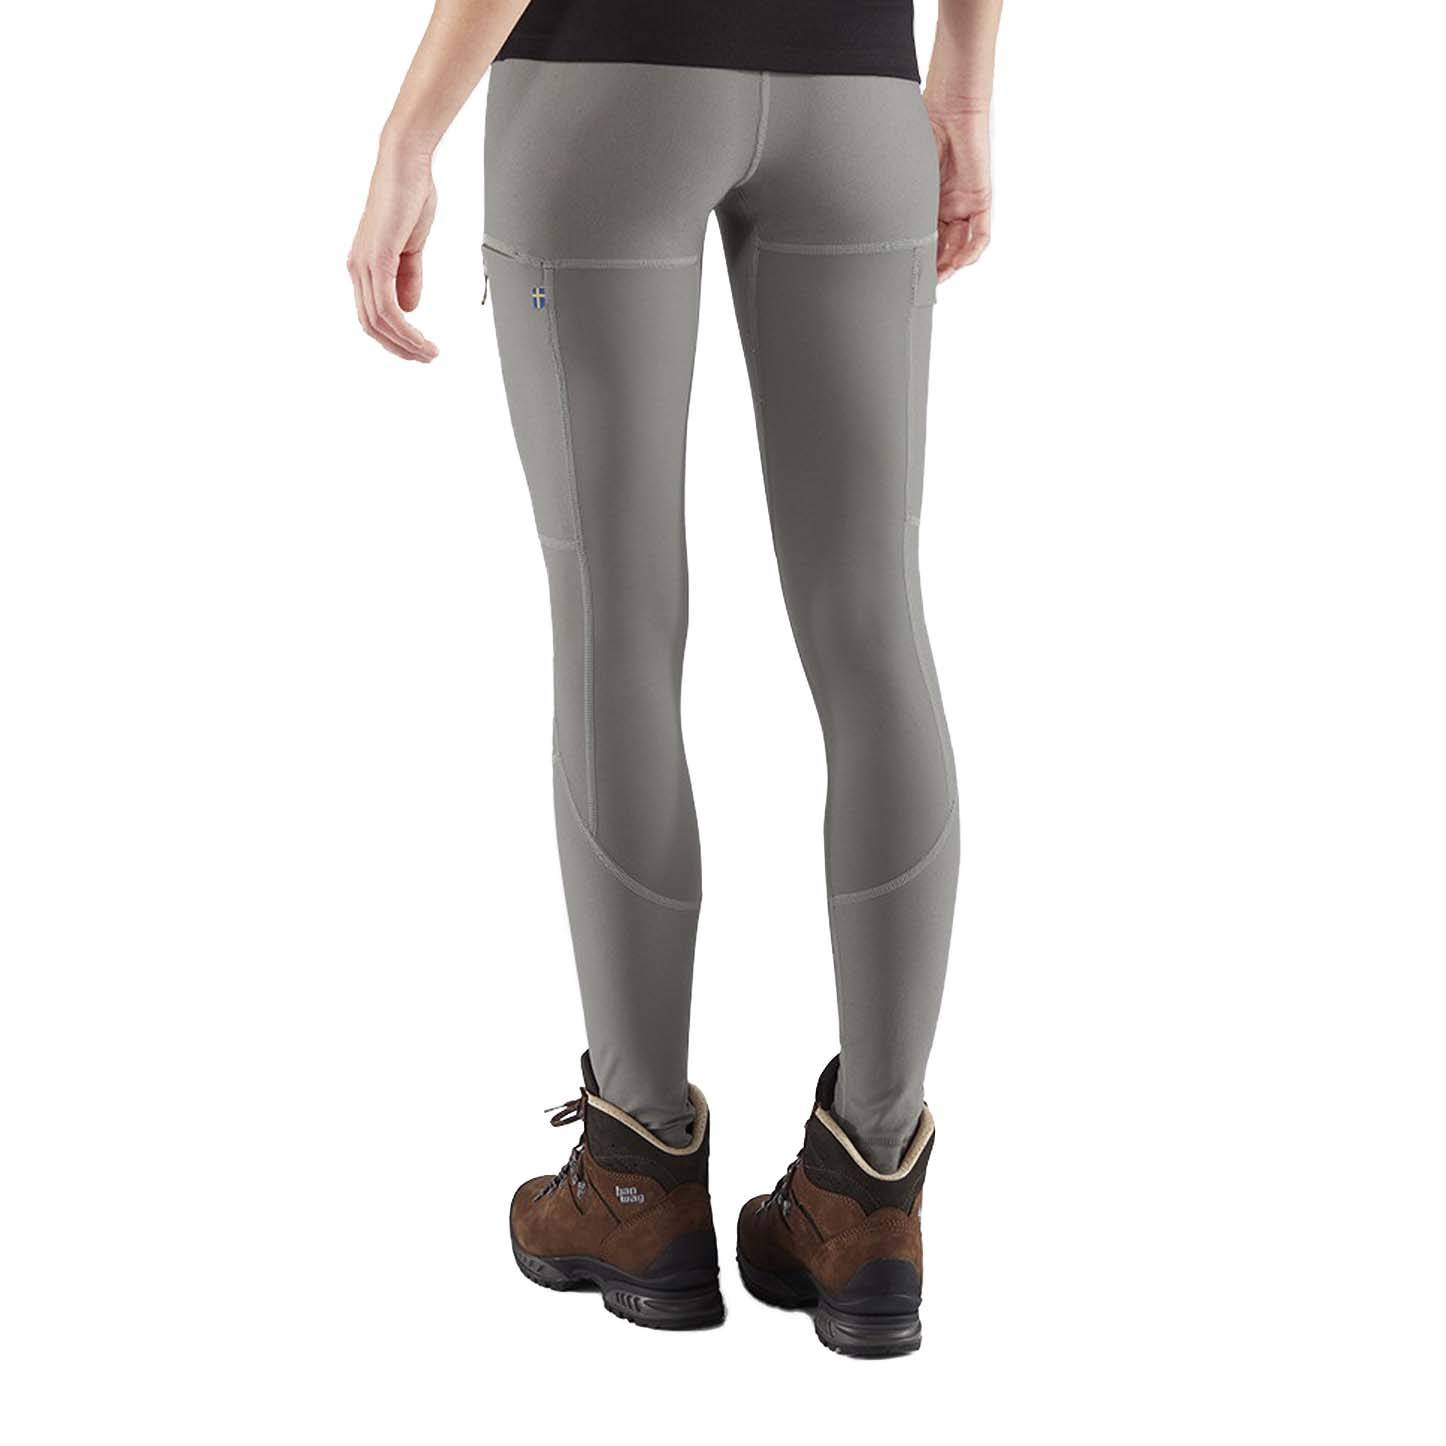 lowest price best value pretty nice Abisko Trail Tights W Black